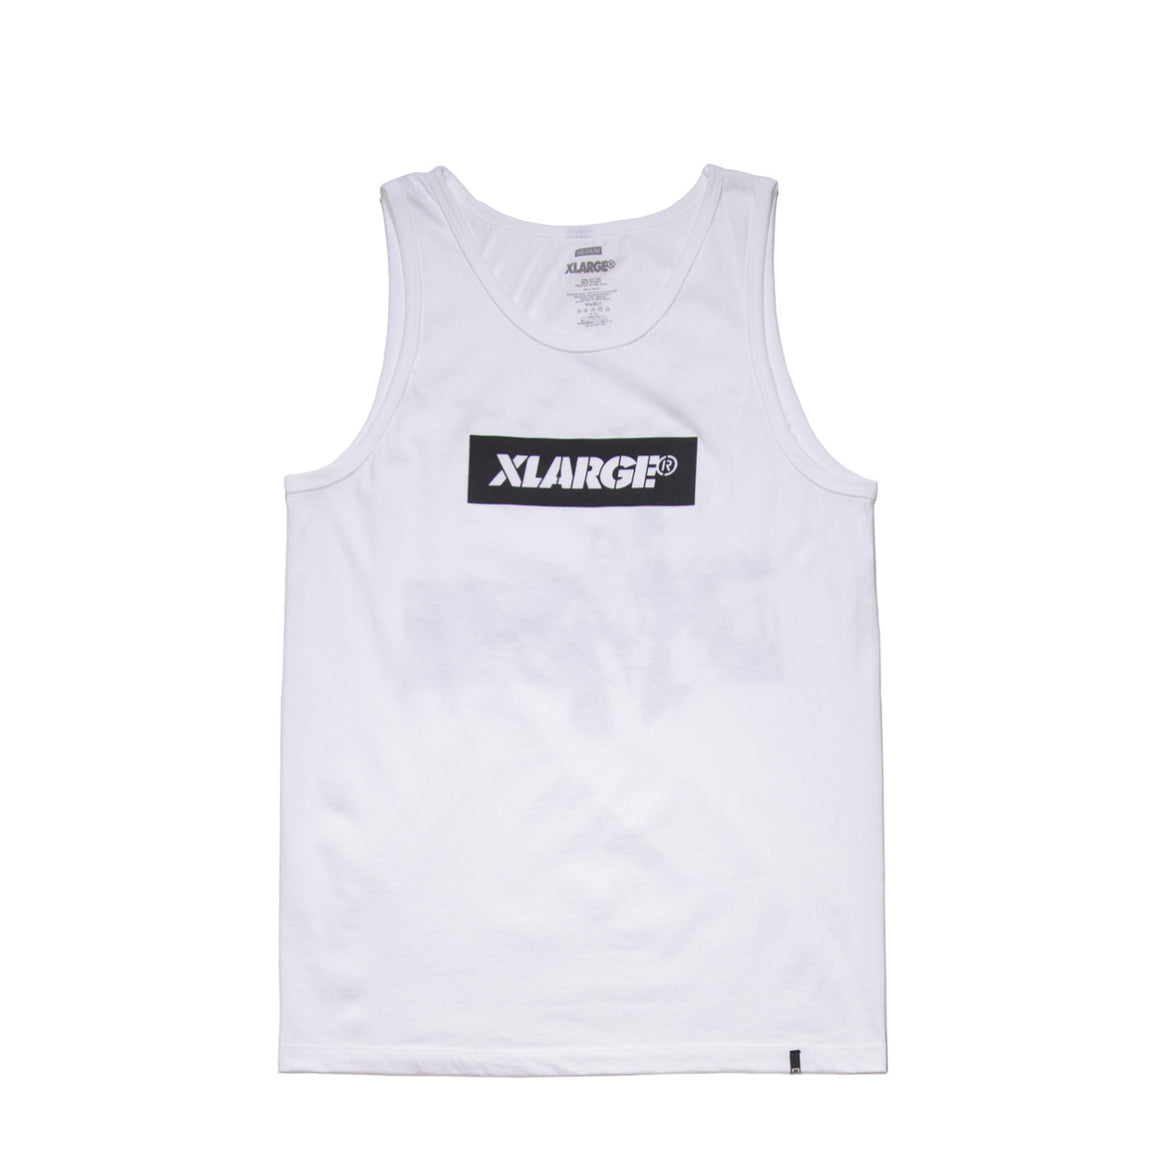 FORMATION TANK TOP - X-Large Clothing